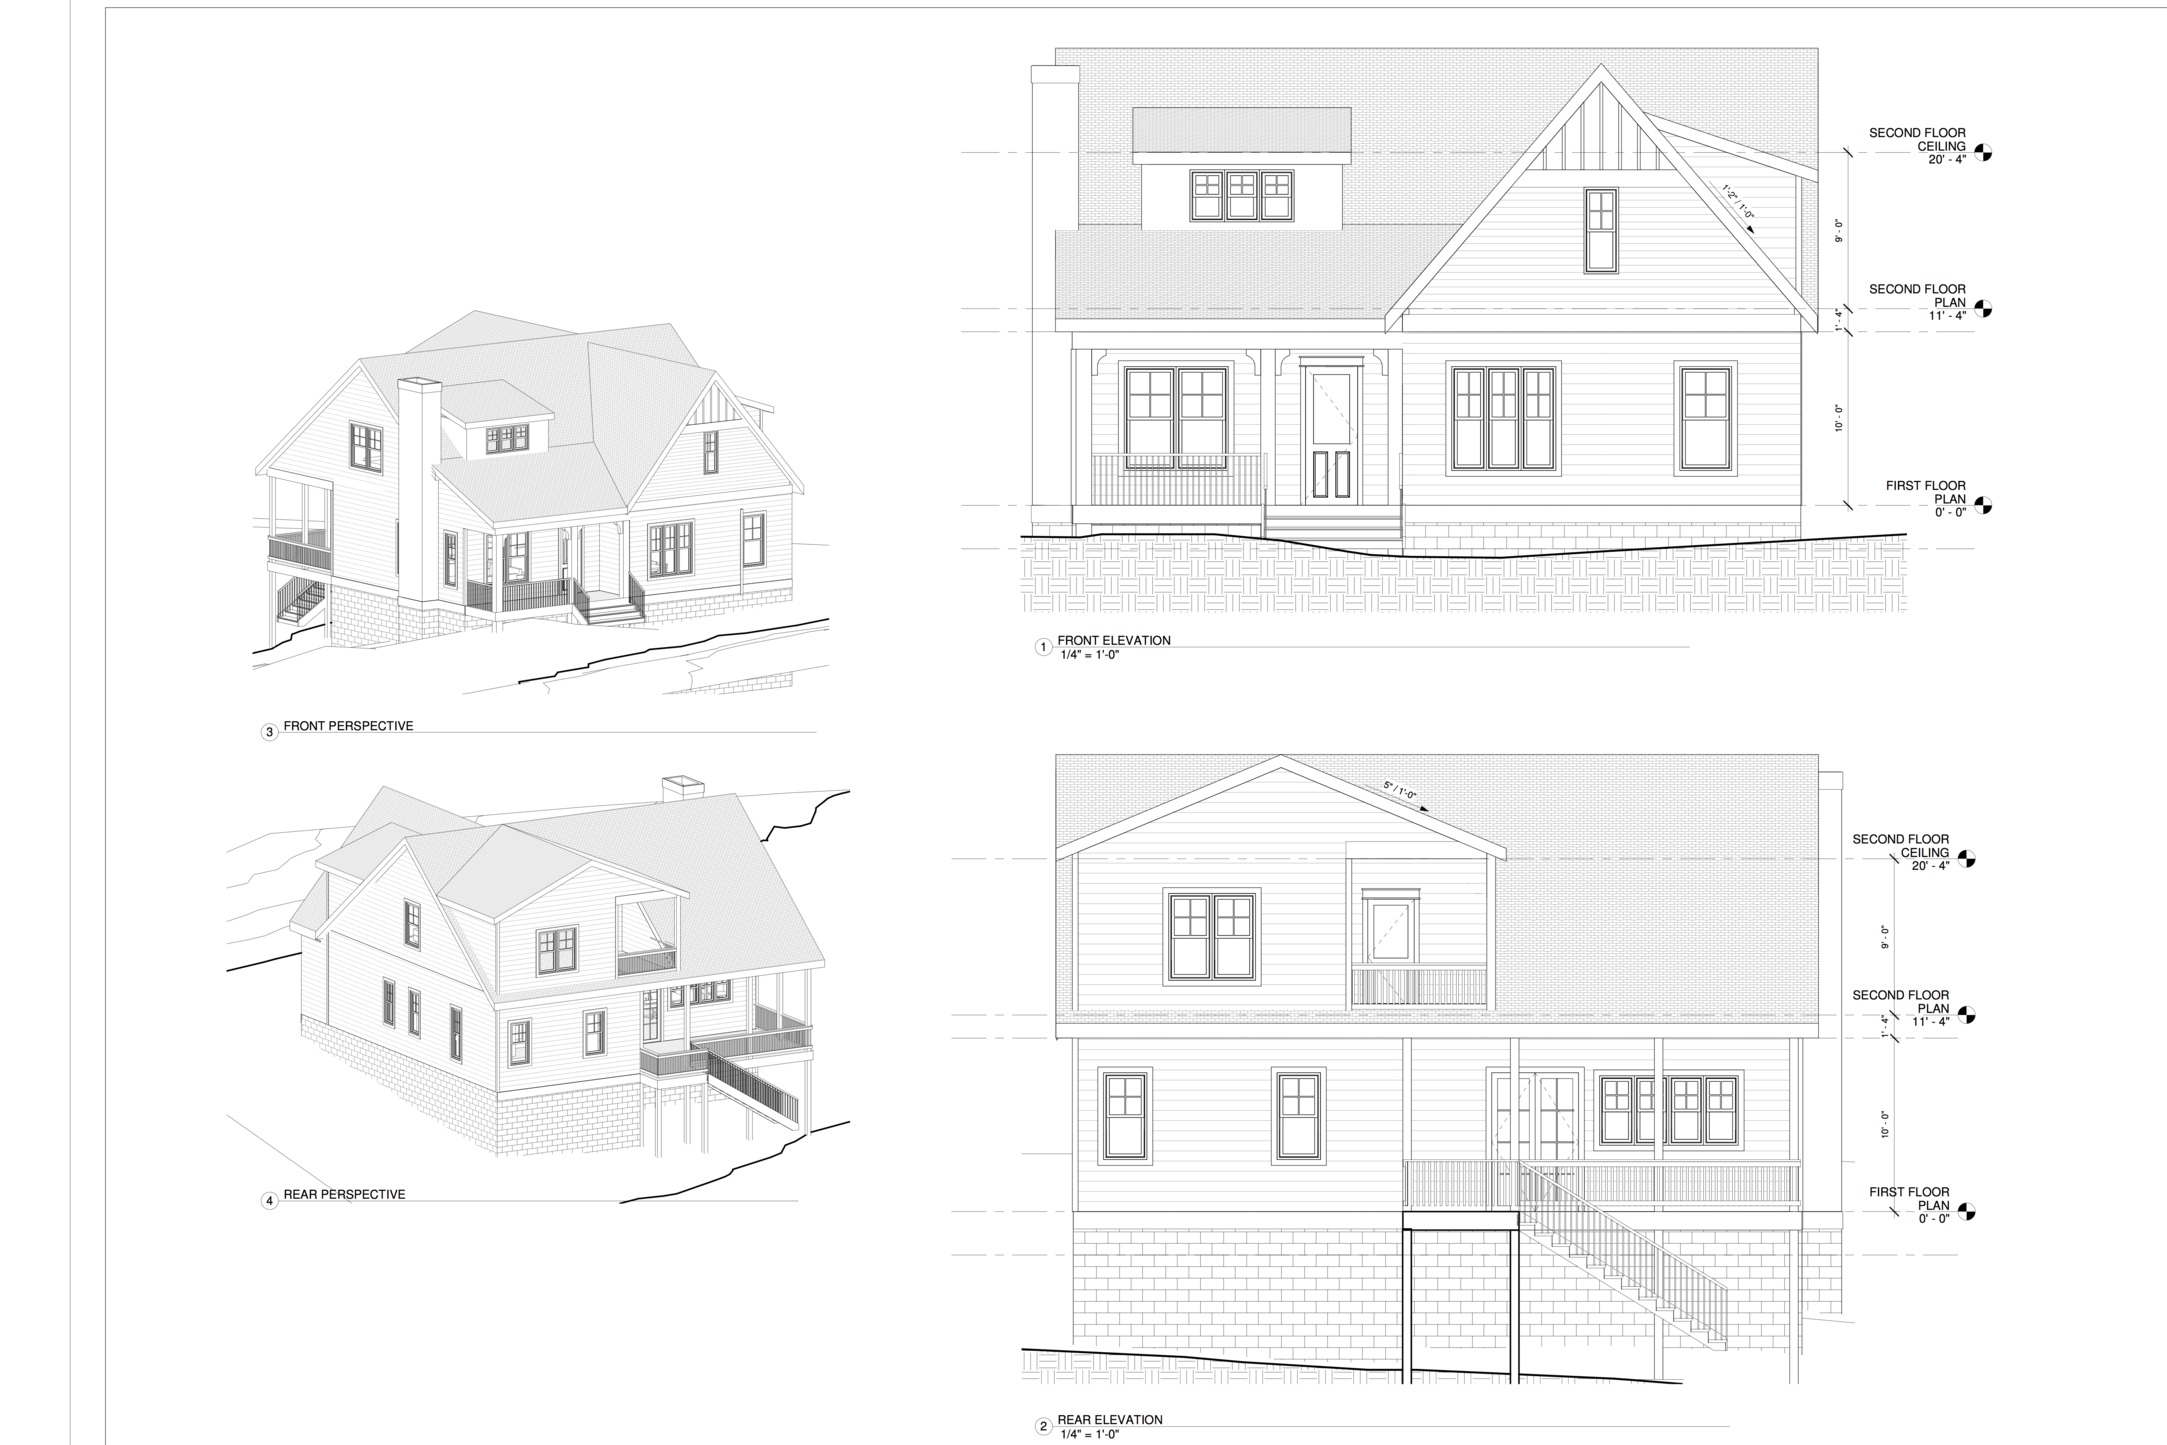 Schematic Plan_1515B Norvel Ave_0161018 (1).png